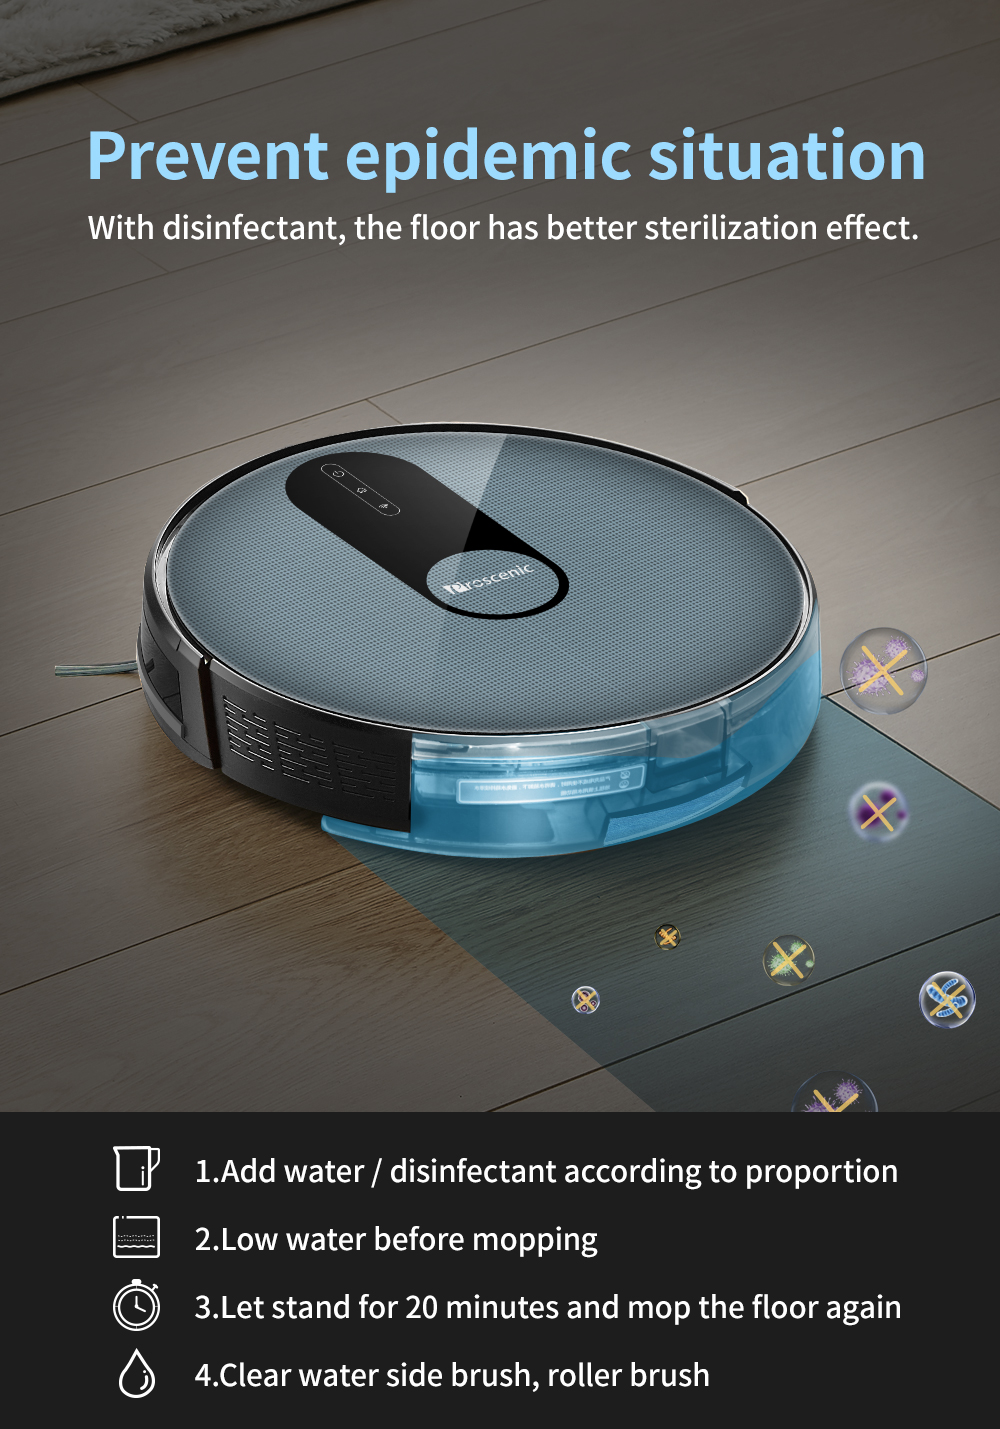 H8fff910683bb4e4598051c3b6b9aef4dg Proscenic 820P Robot Vacuum Cleaner Smart Planned 1800Pa Suction with wet cleaning for Home Carpet Cleaner Washing Smart Robot